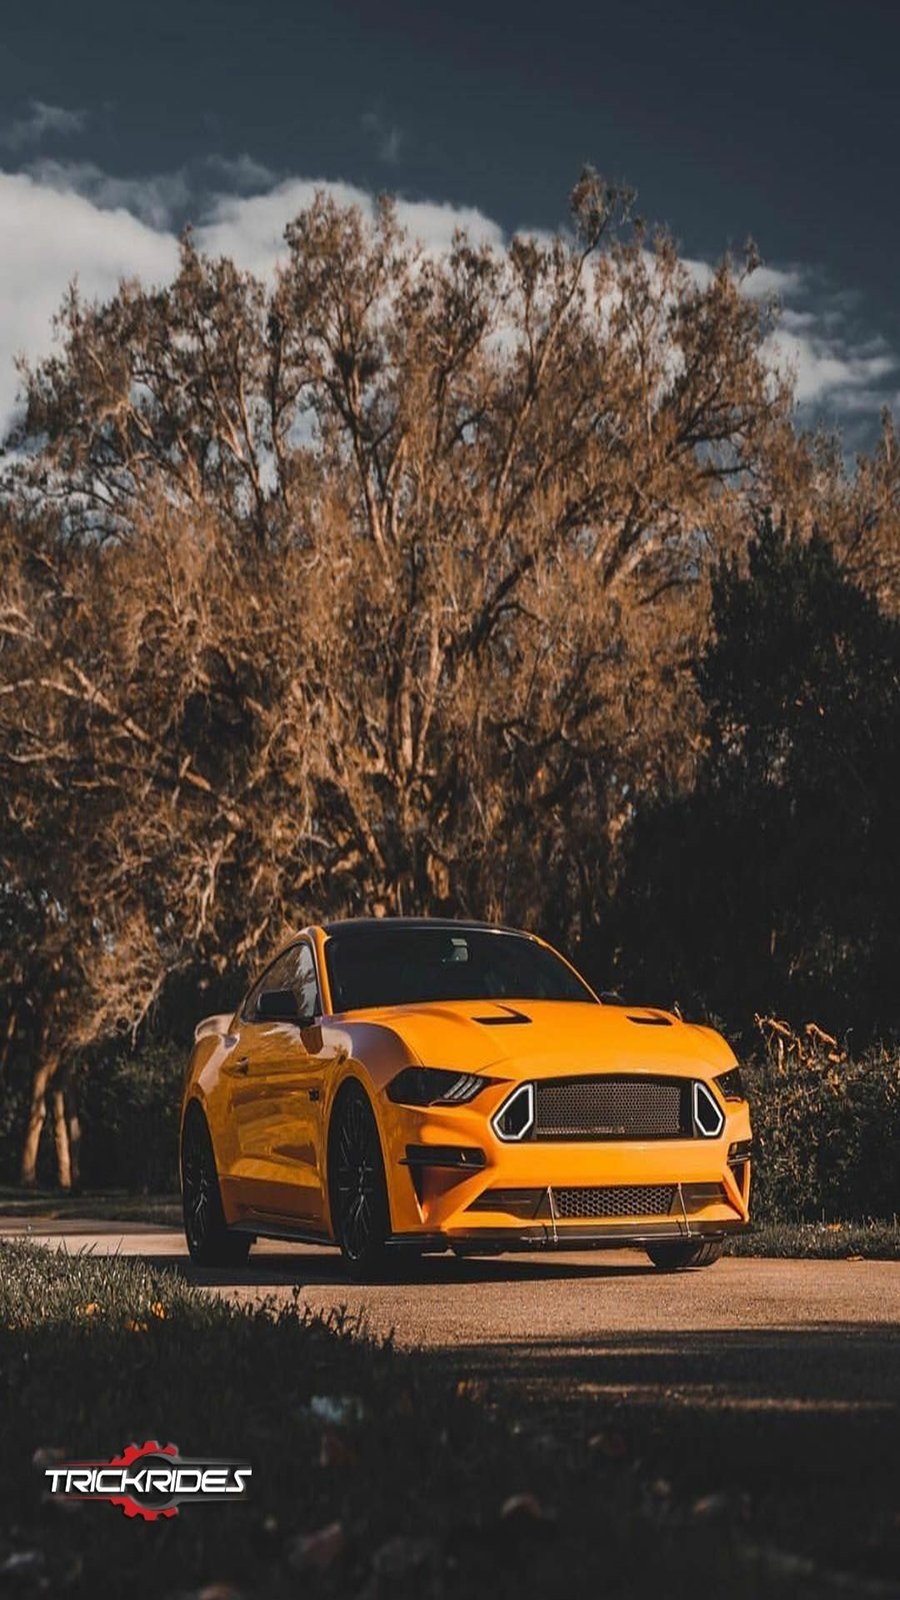 Super Car Wallpapers for Mobile Free Download – Best Wallpapers (54)